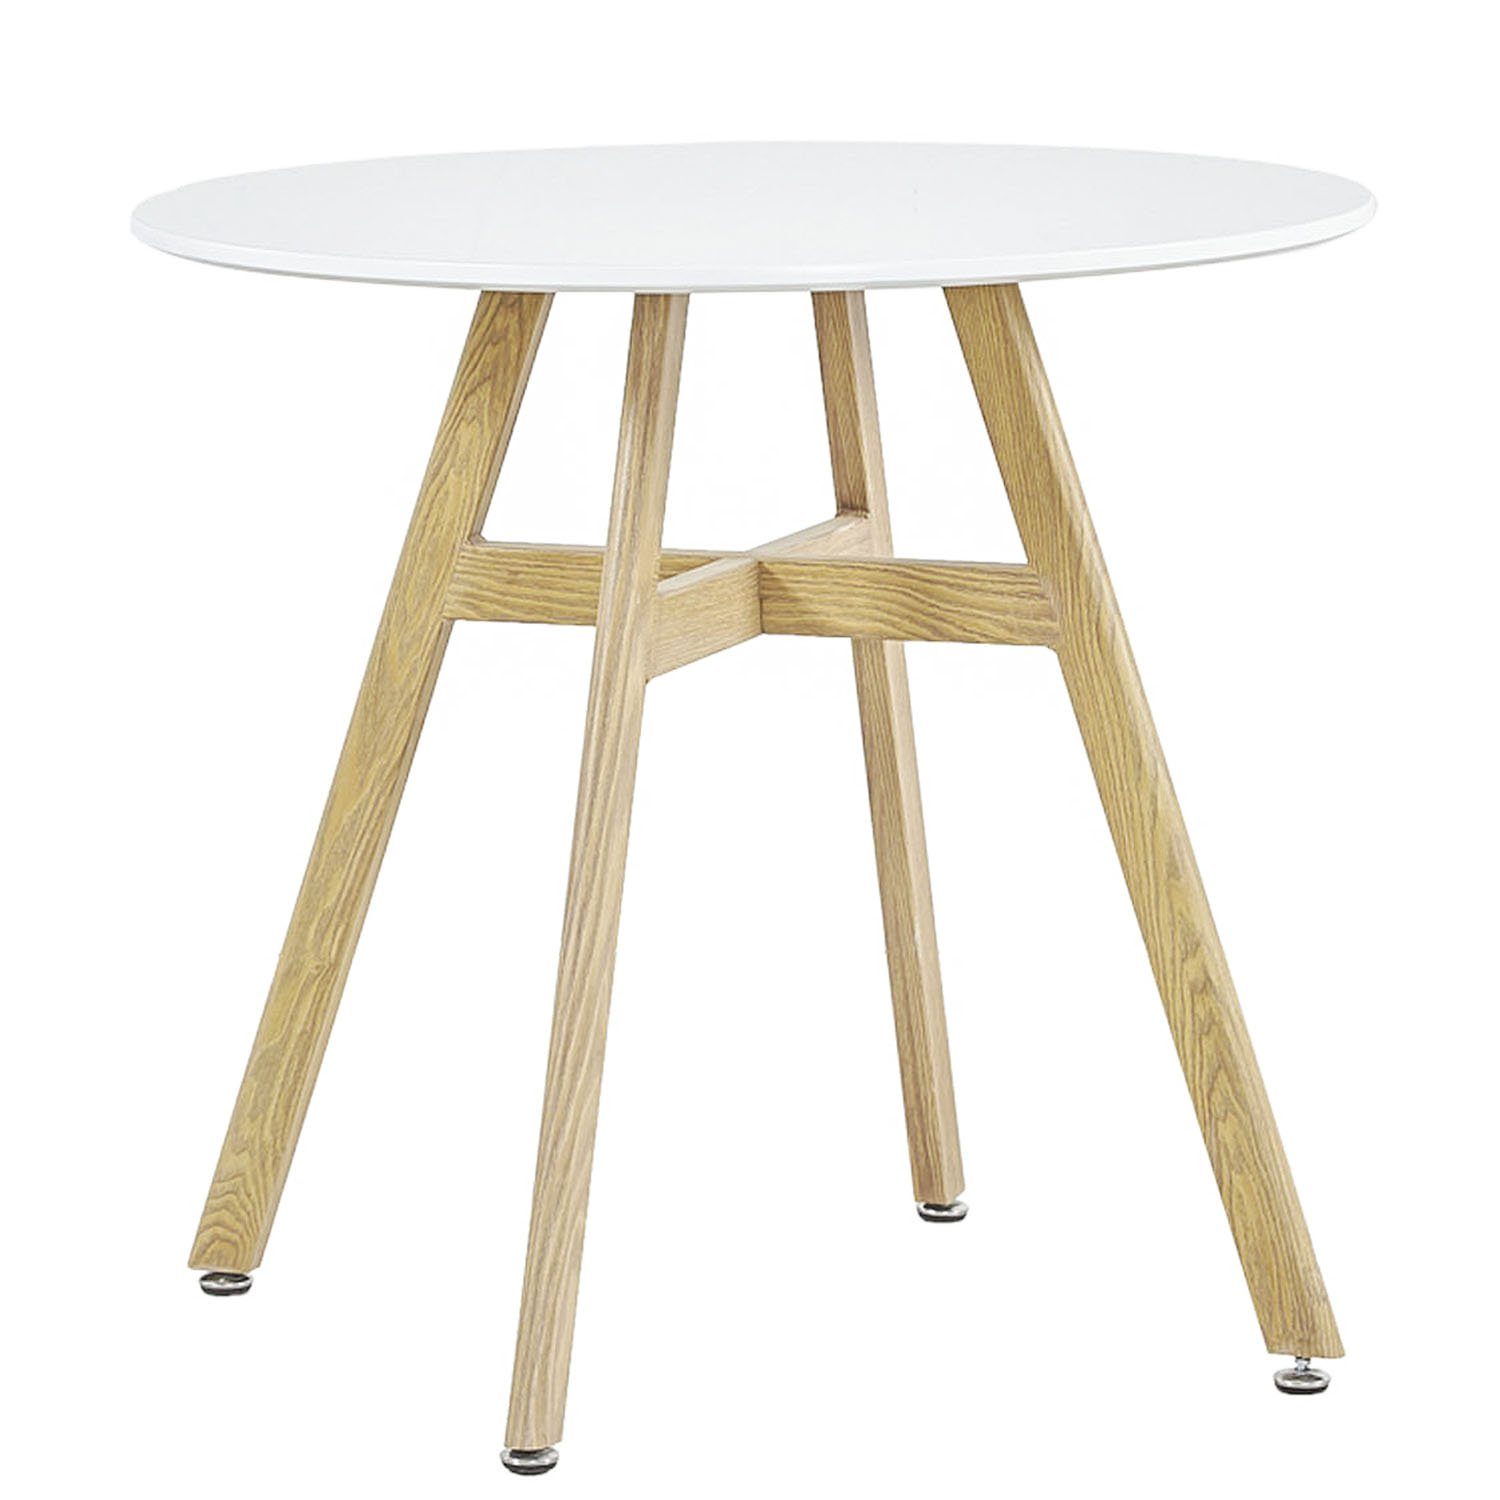 "GreenForest Round Dining Table with 32"" White Wooden Table Top and Sturdy Wooden Paint Metal Legs, Kicthen Room Pedestal Leisure Coffee Tea Table"